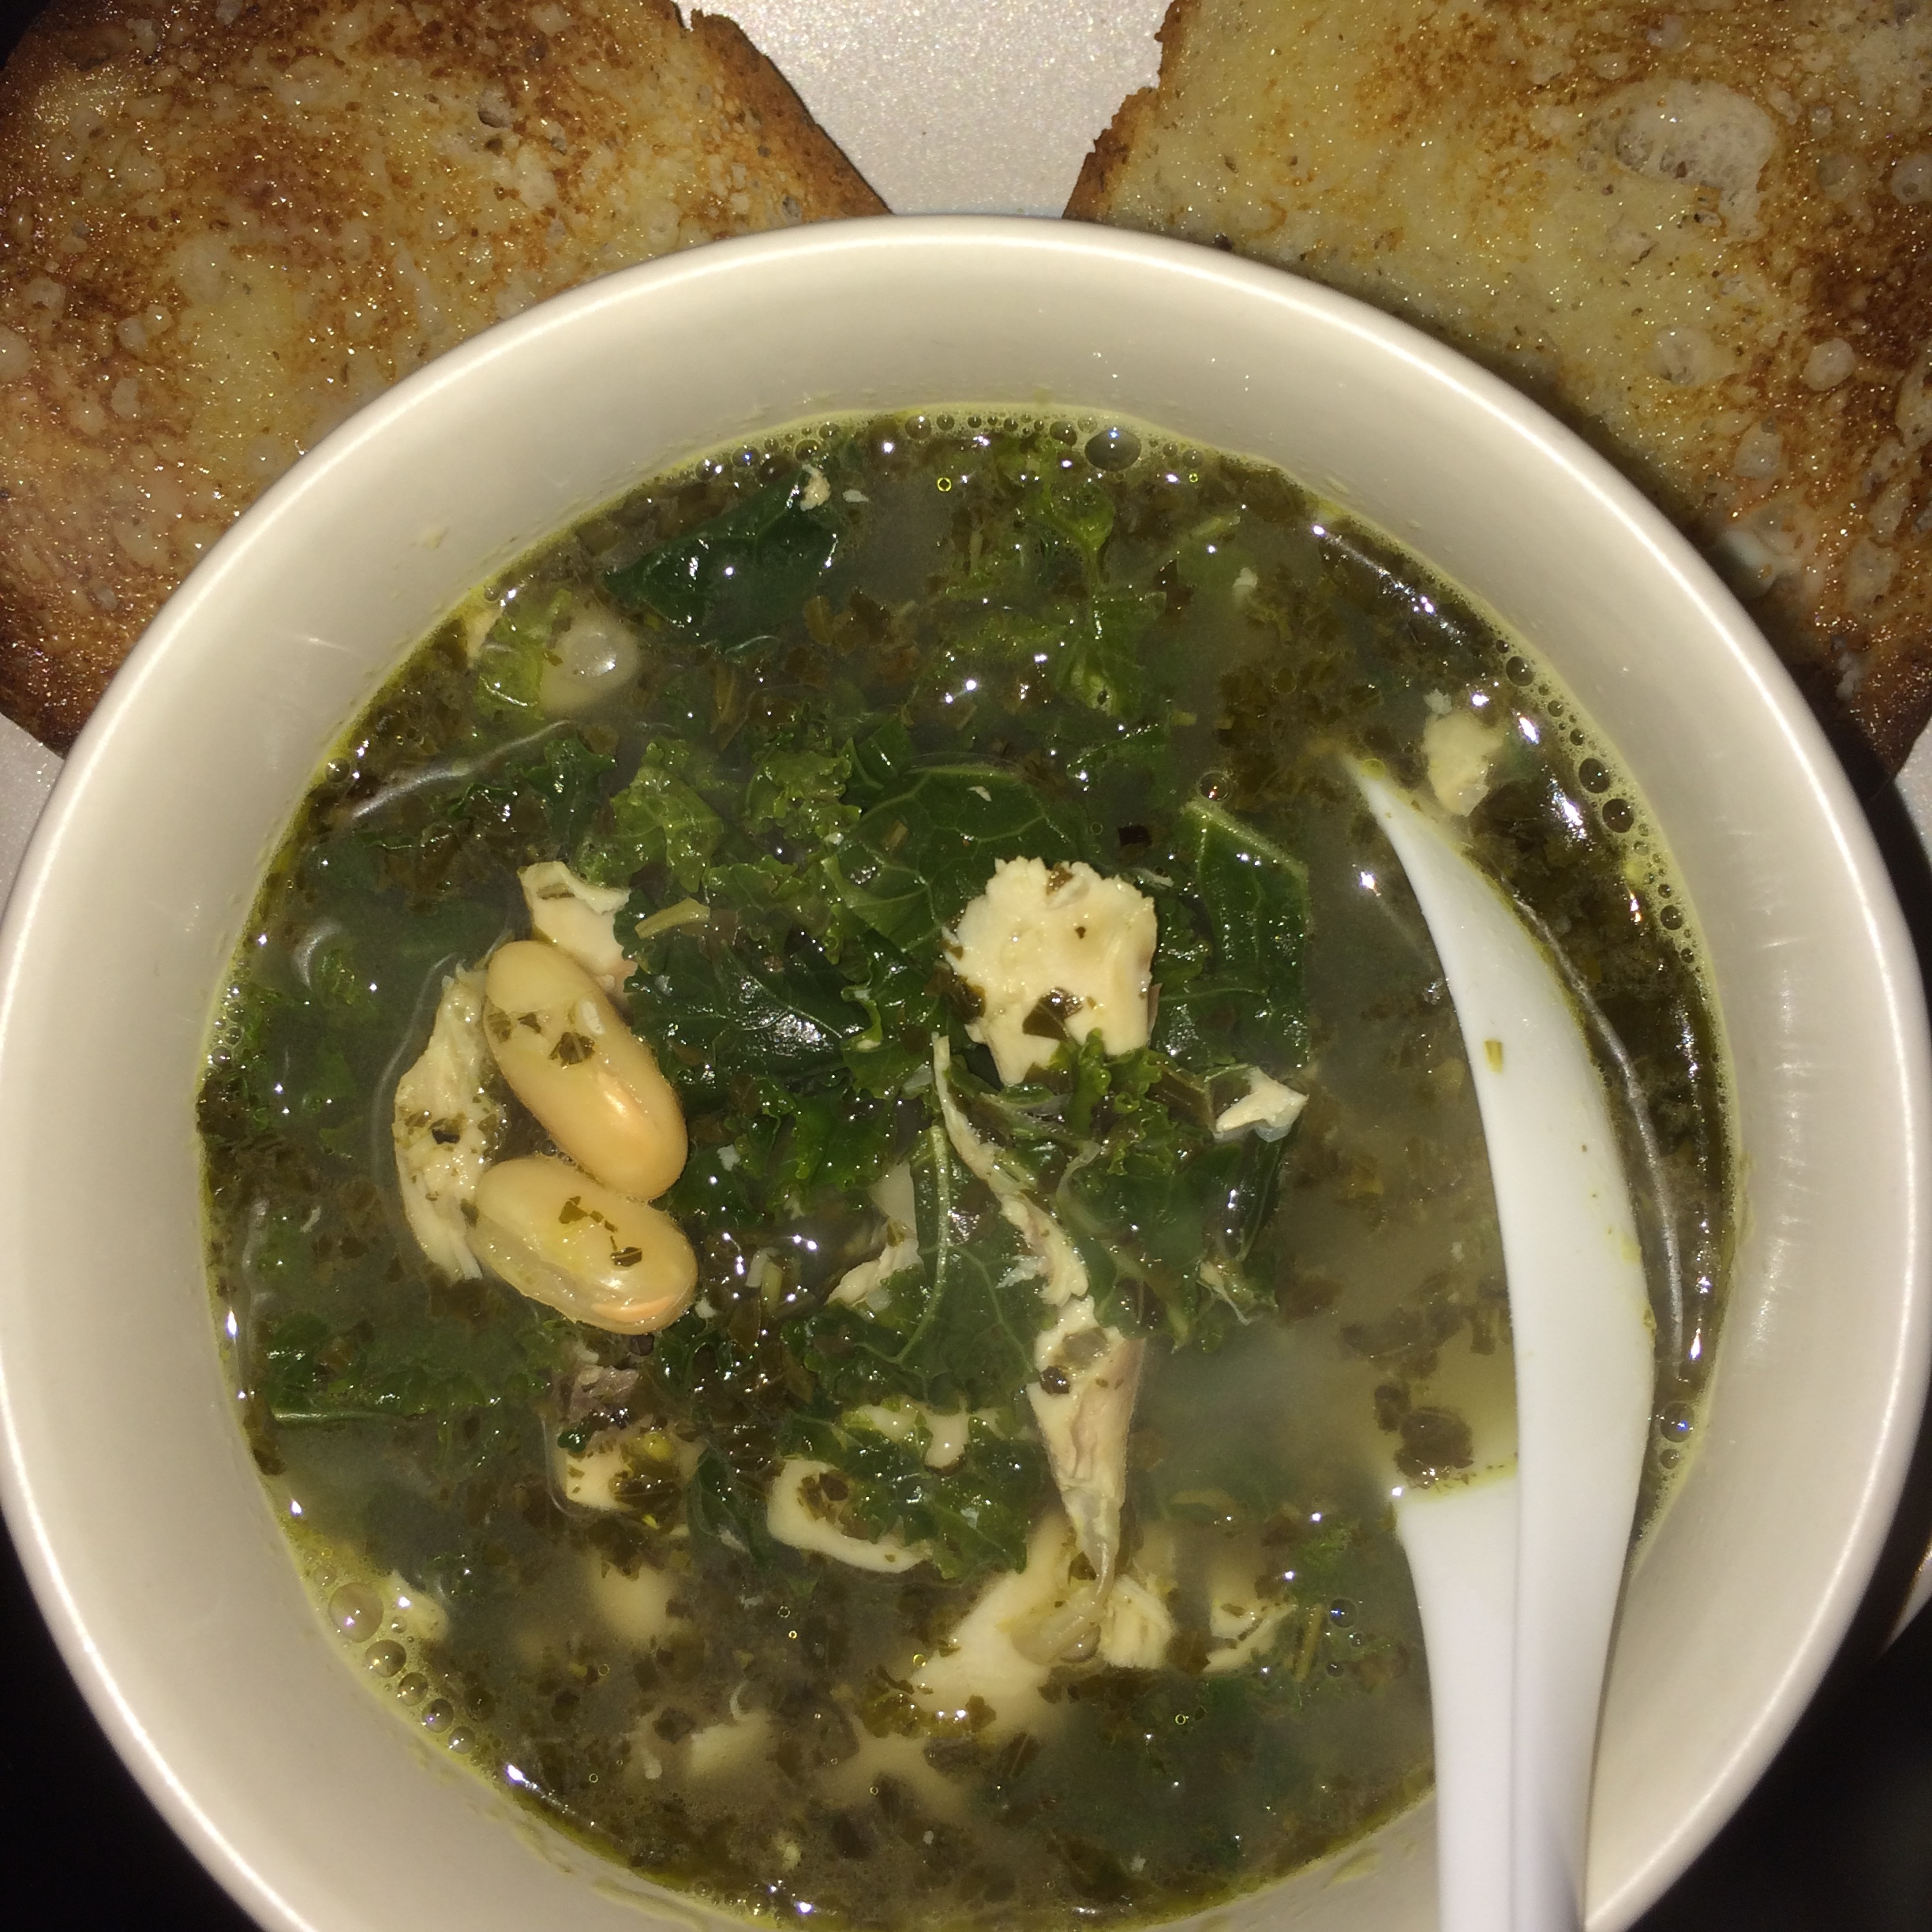 ... Pesto Chicken Soup was my start but I adjusted based on the